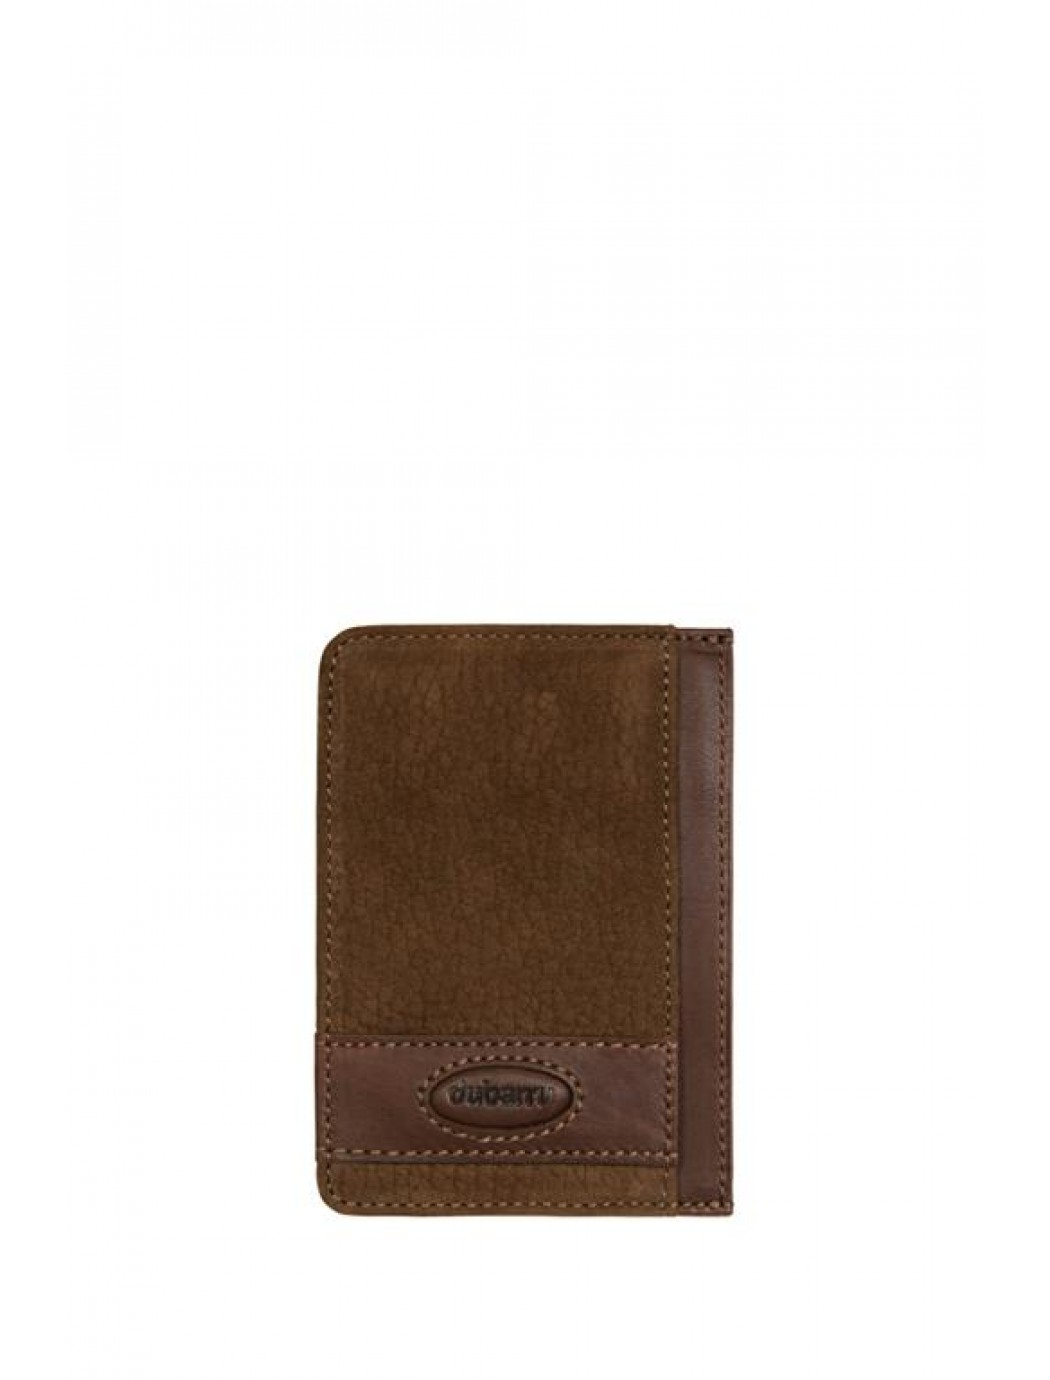 belleek-leather-money-clip-walnut-dubarry-1